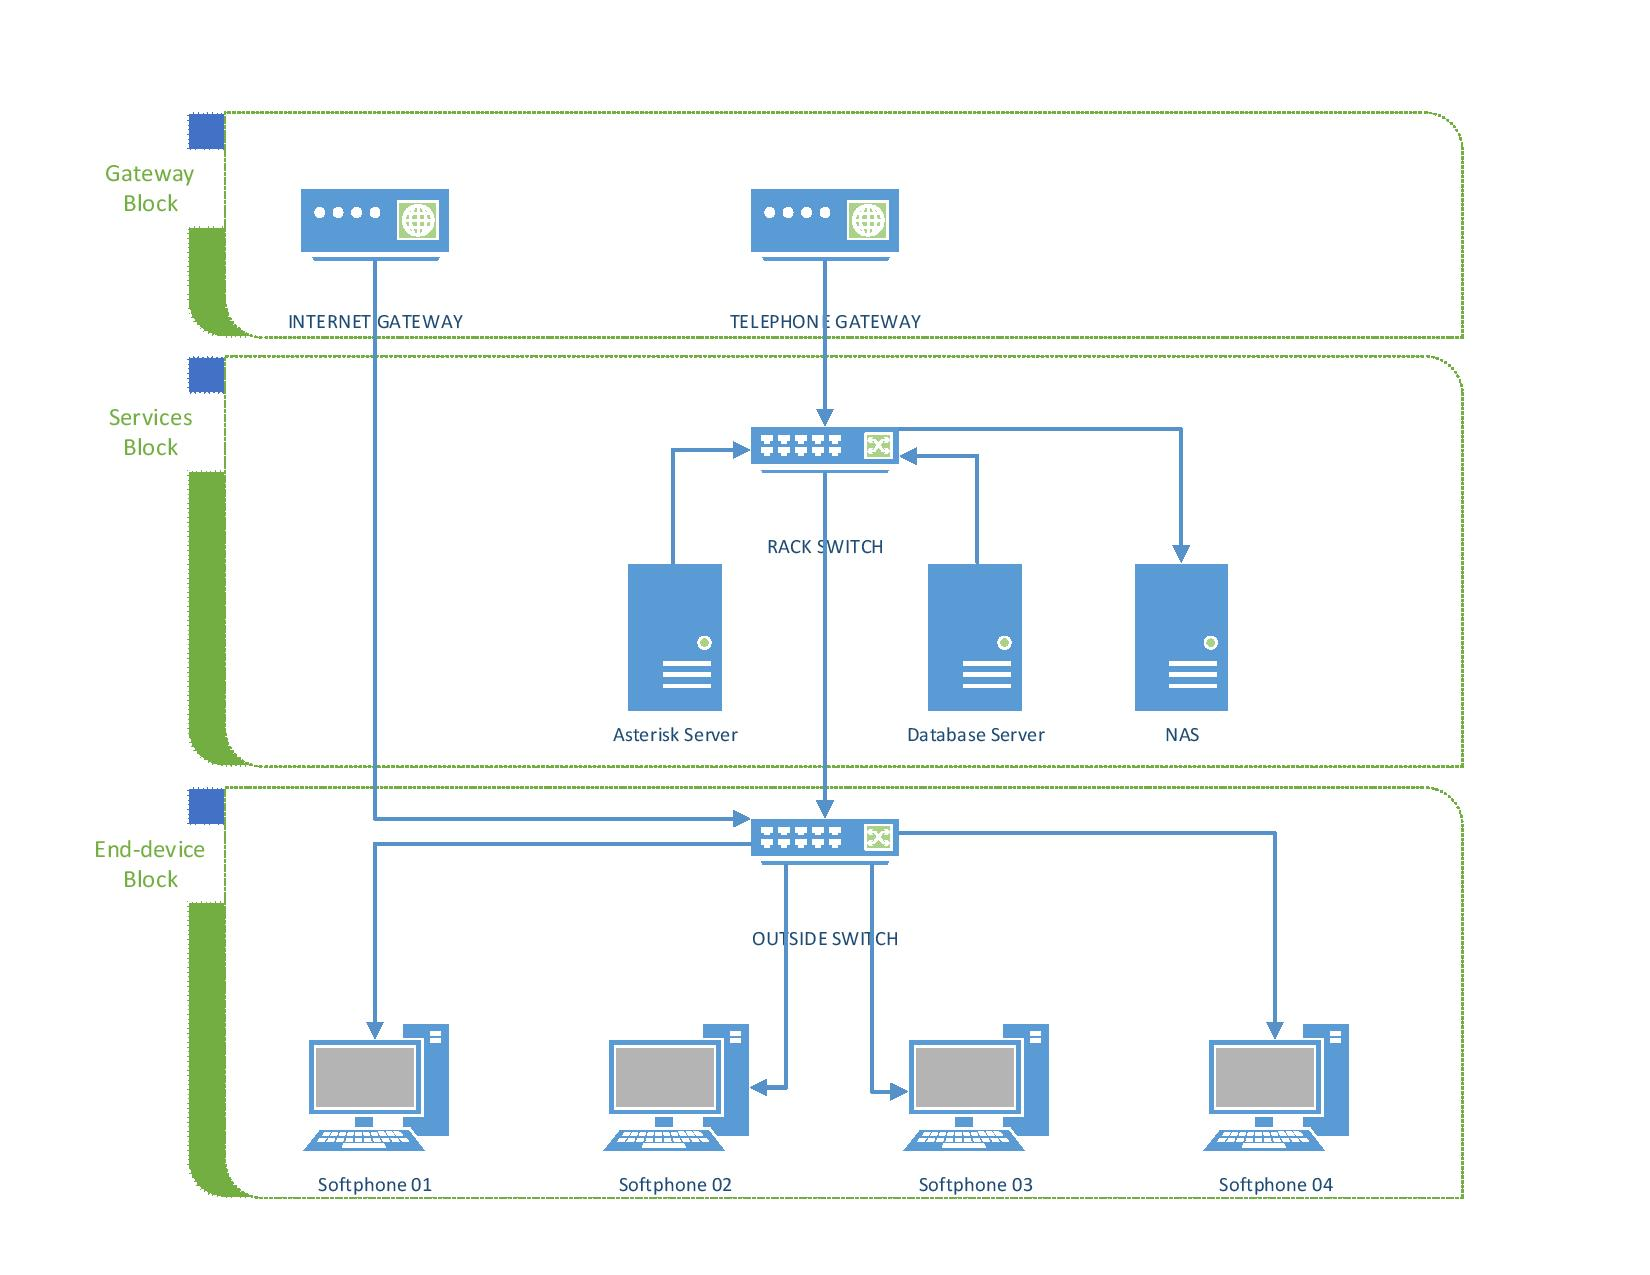 General equipment diagram of Call Center system